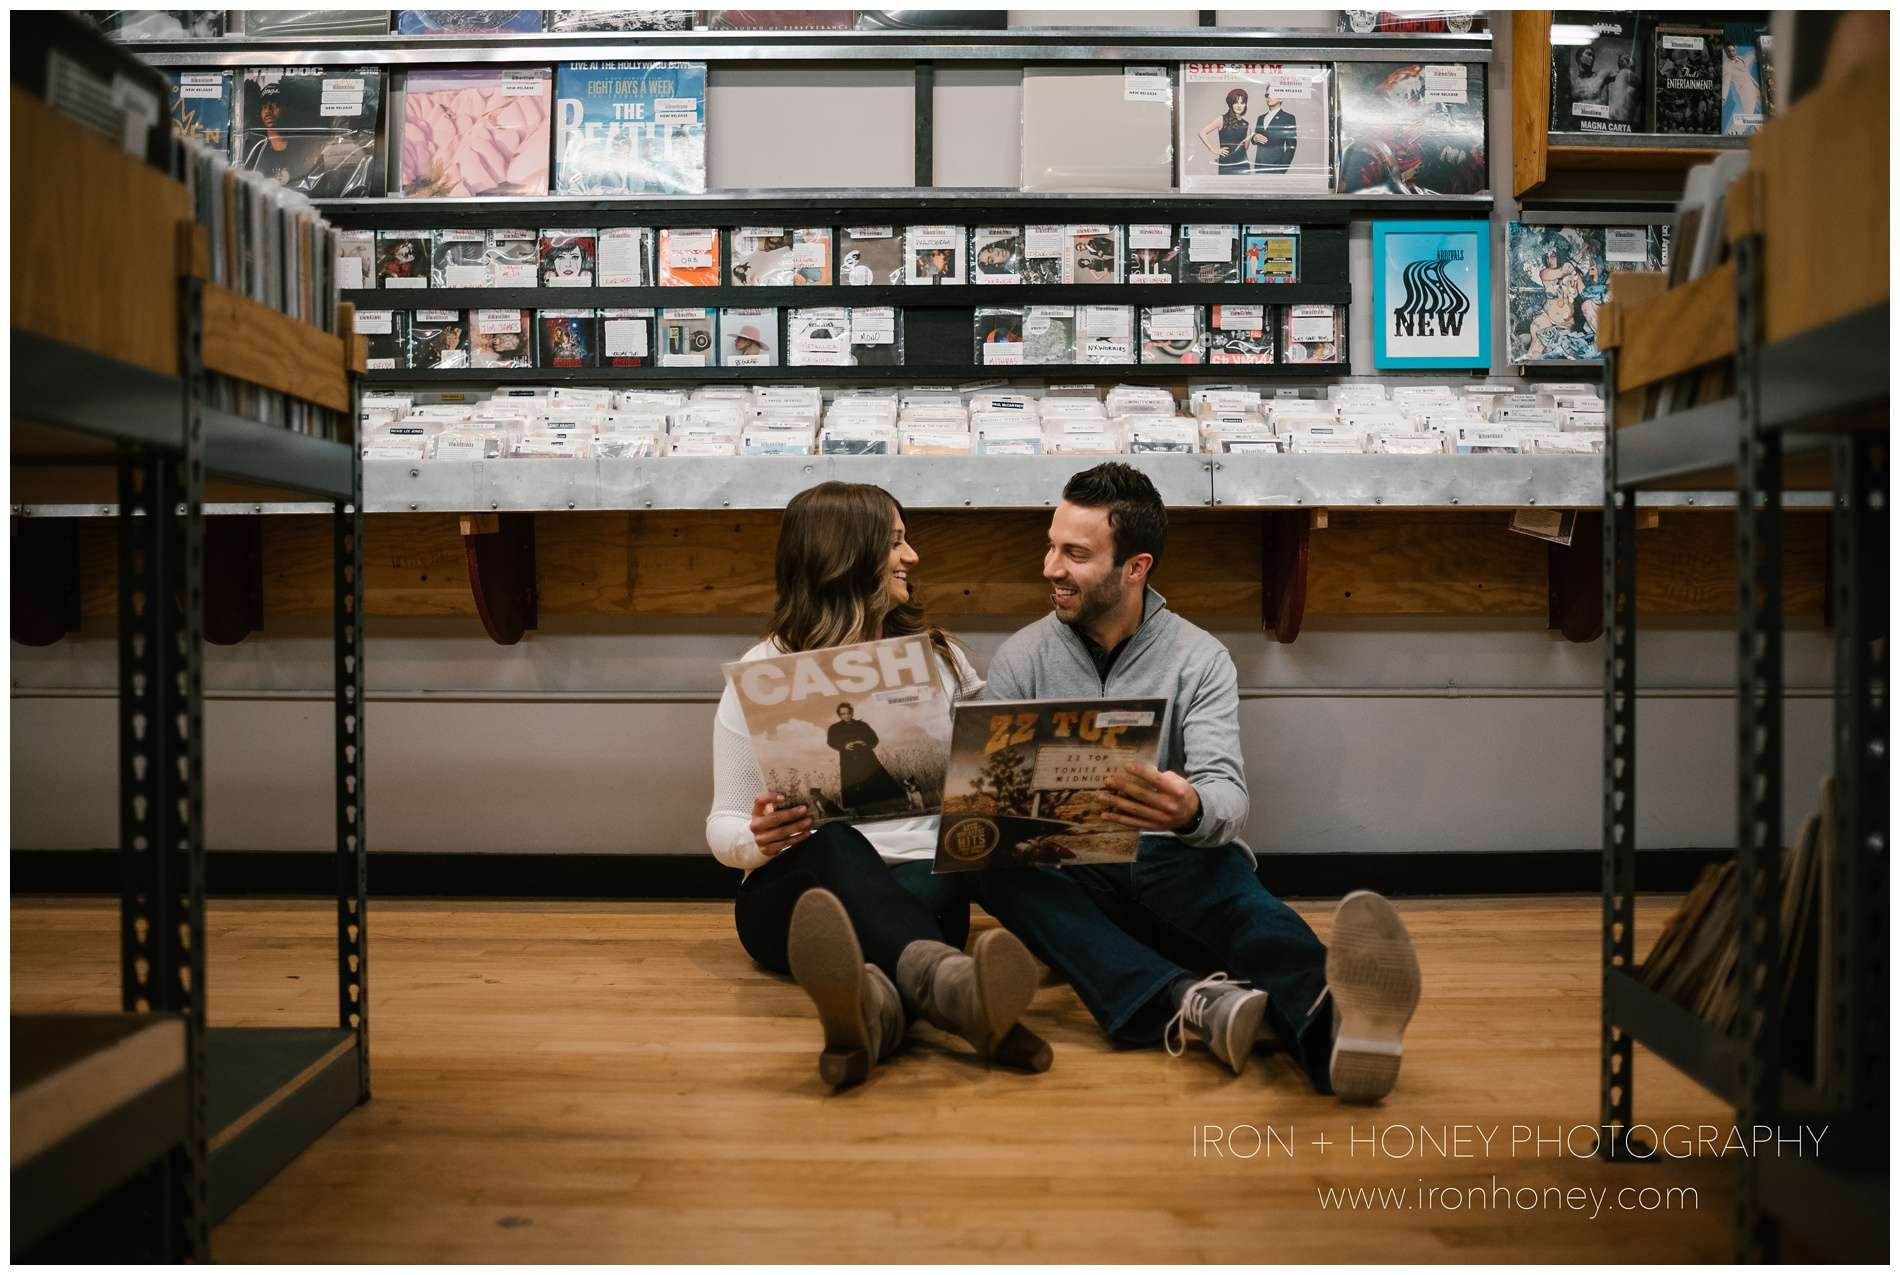 engagement session at reckless records, record store engagement session, reckless records, iron and honey, photography, chicago engagement photographer, chicago photographer